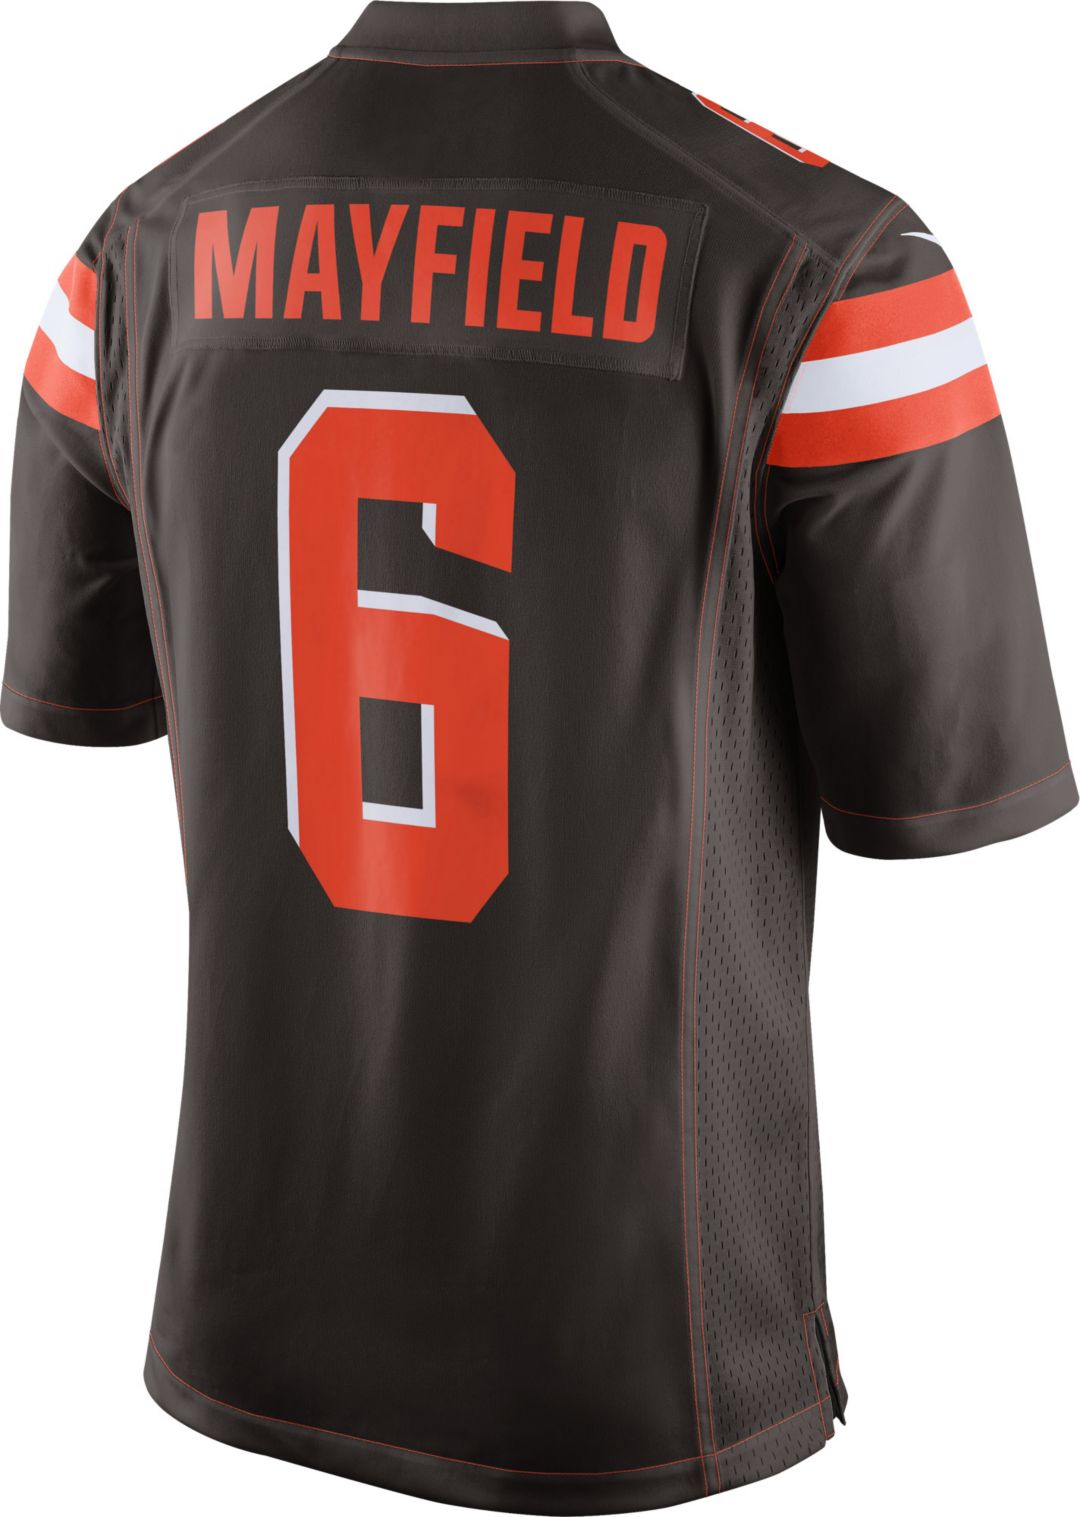 brand new 99839 64dae Baker Mayfield #6 Nike Men's Cleveland Browns Home Game Jersey